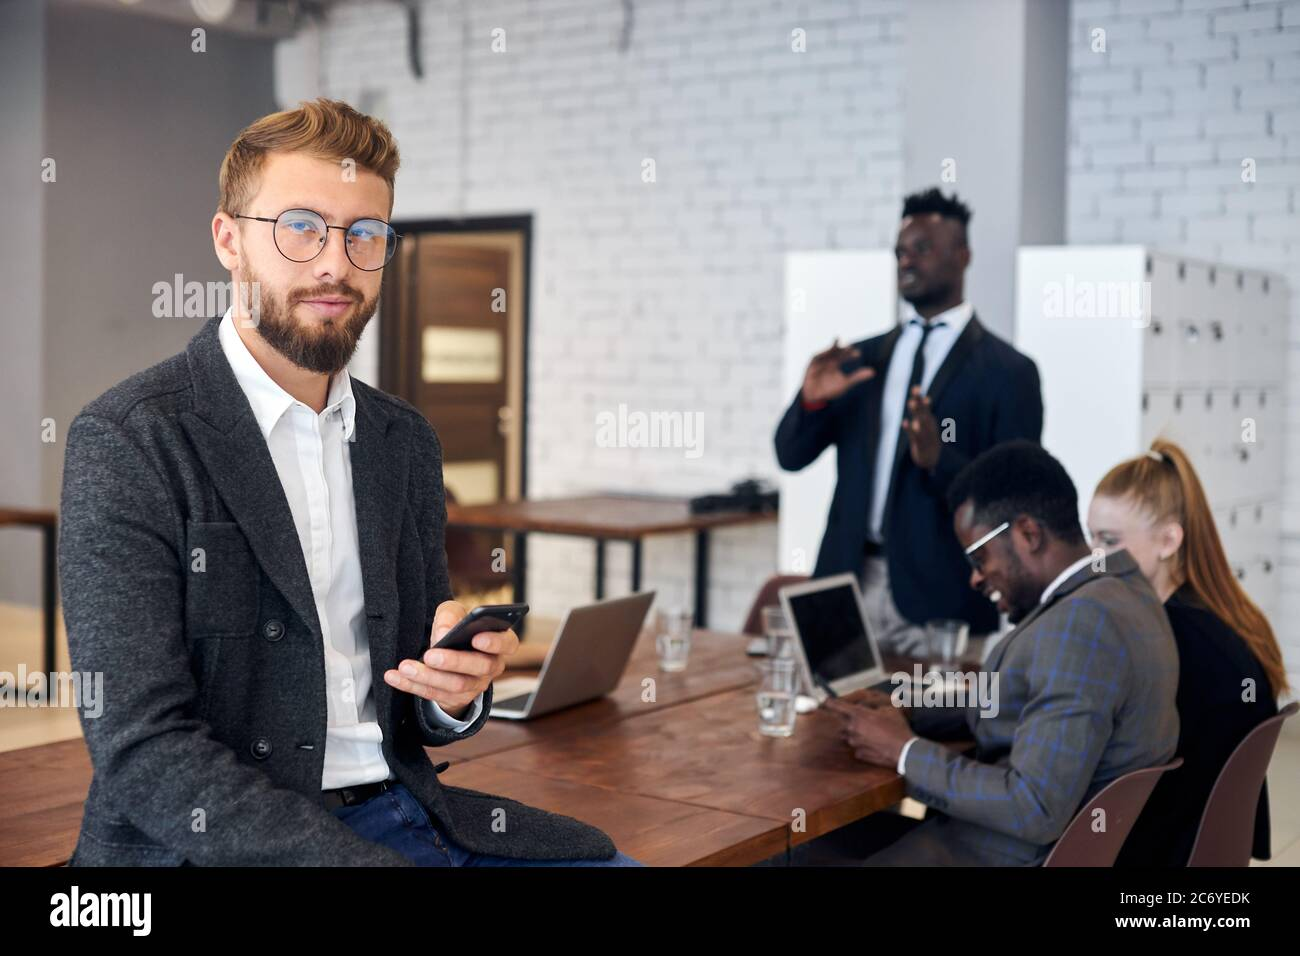 Handsome young man in tuxedo and eyeglasses using smartphone in workplace while his business colleagues having conversation in background Stock Photo